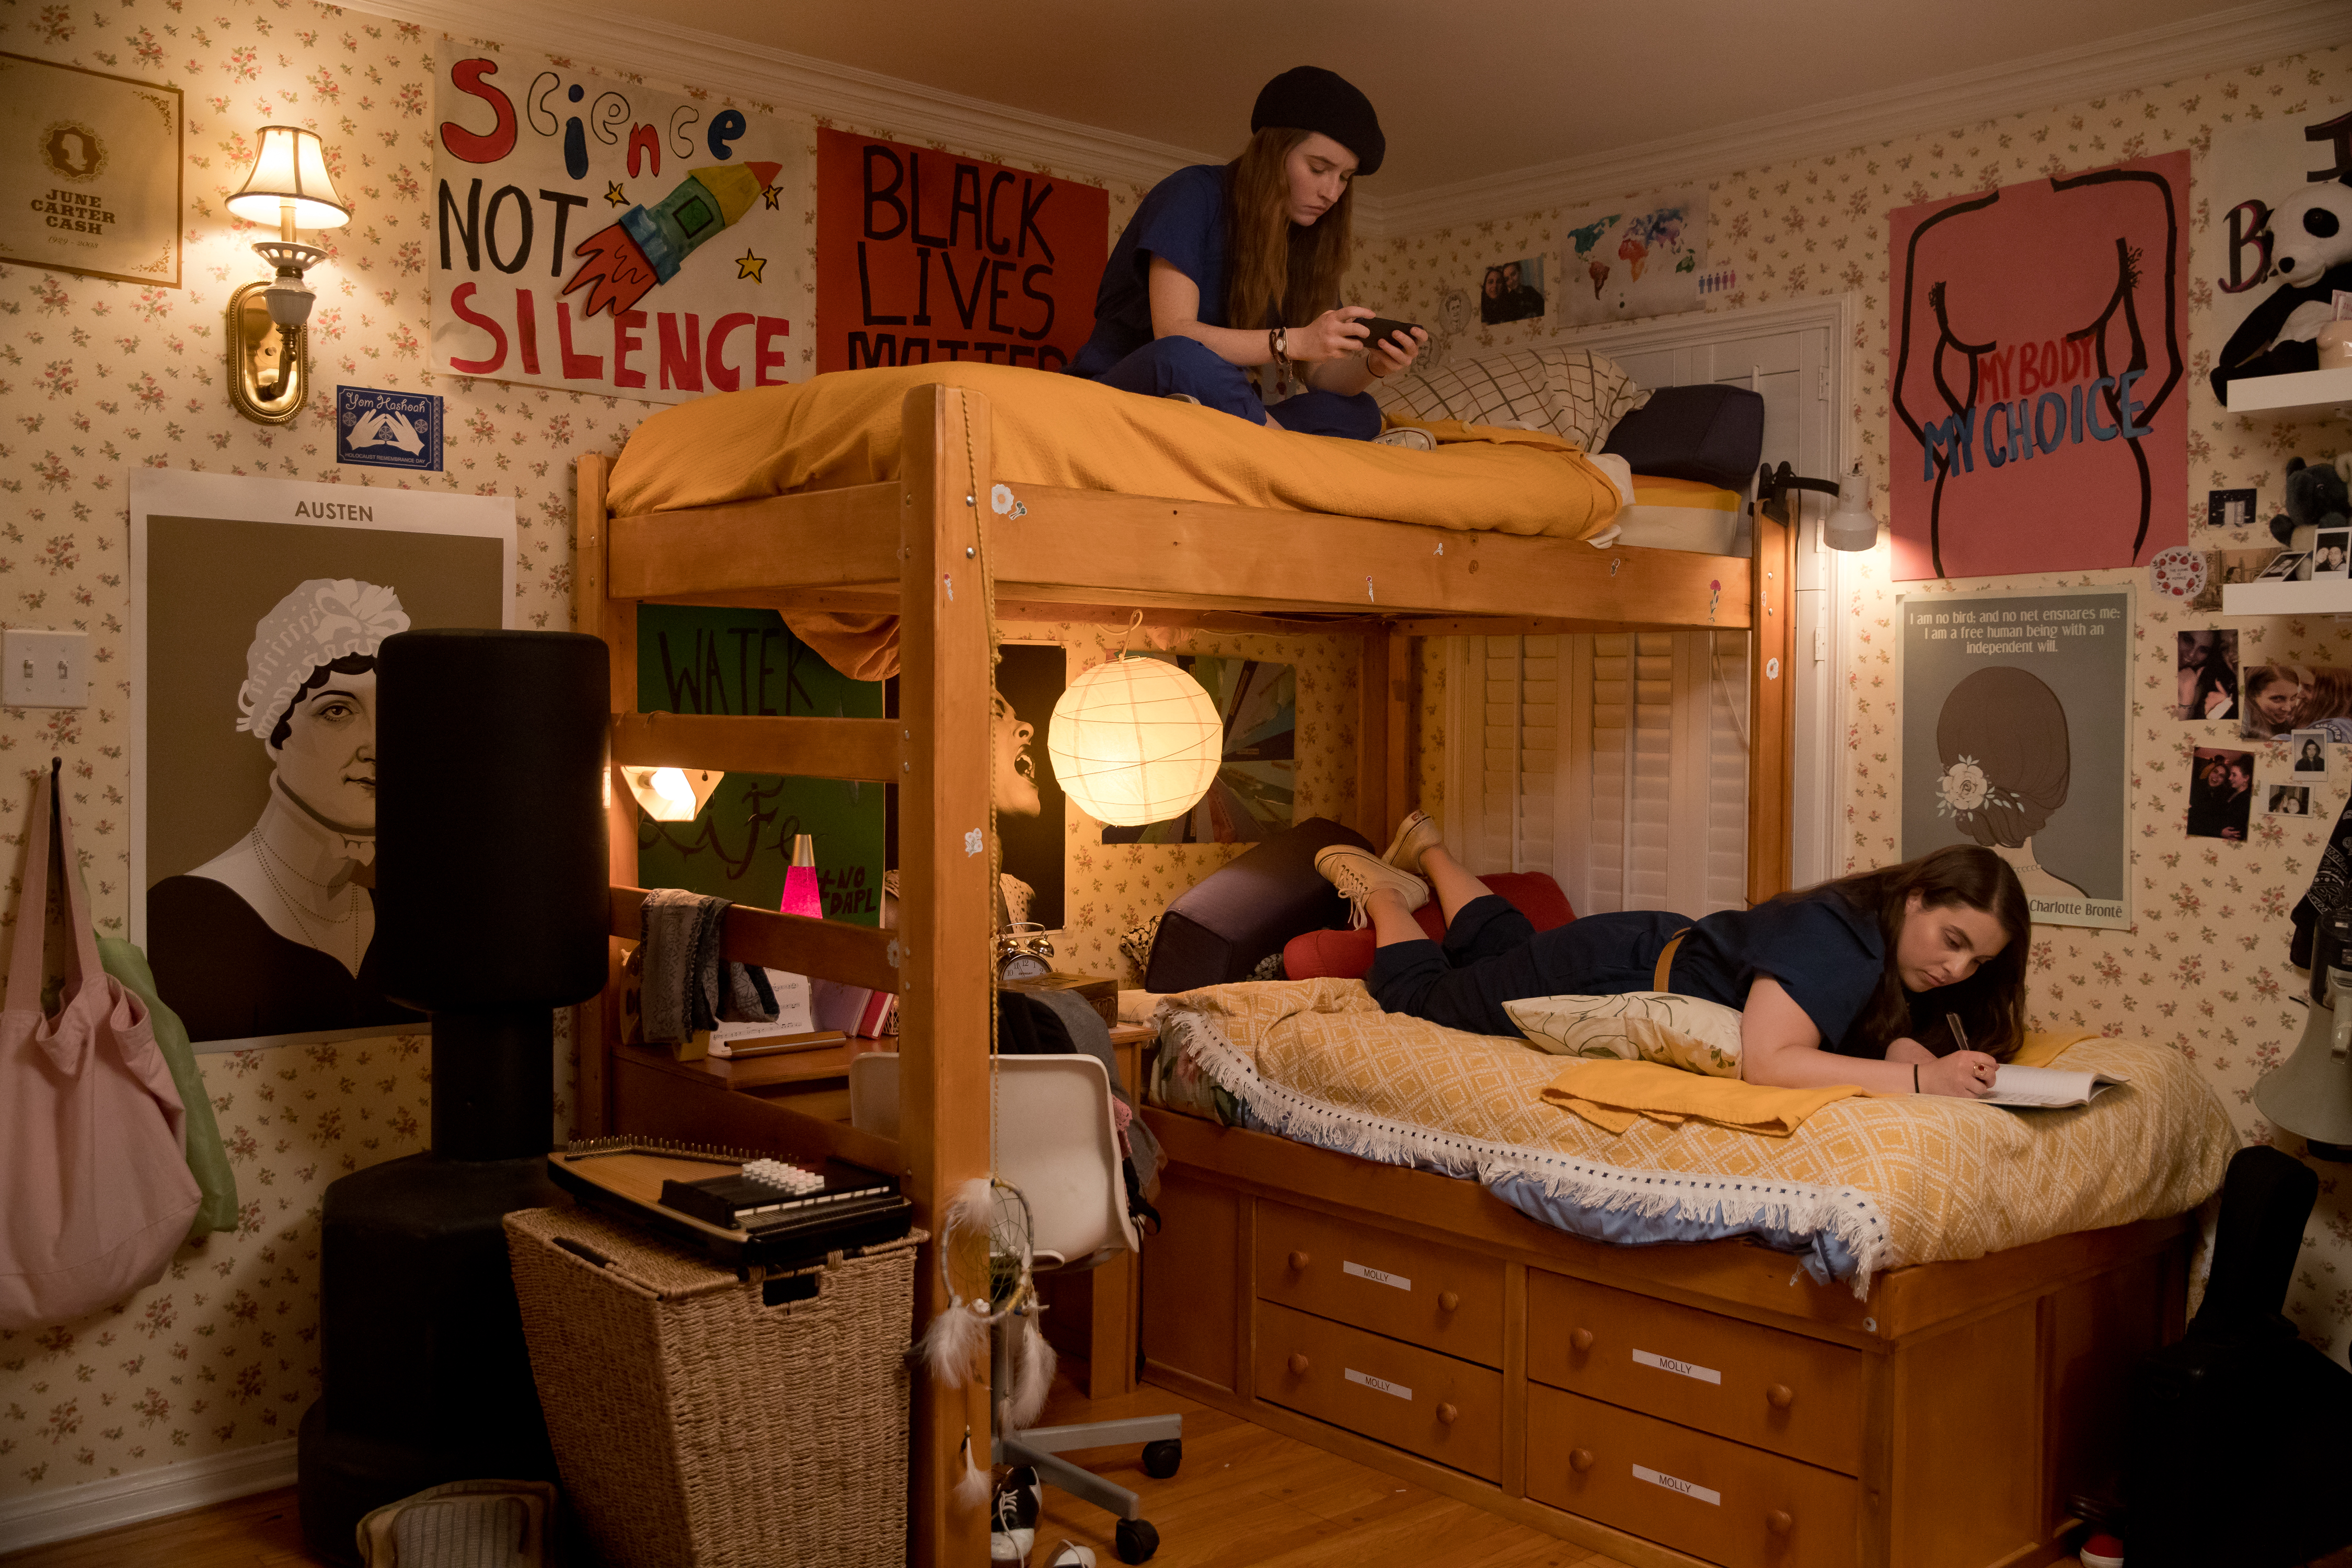 In Booksmart The Teenage Bedrooms Deserve An A Sofia